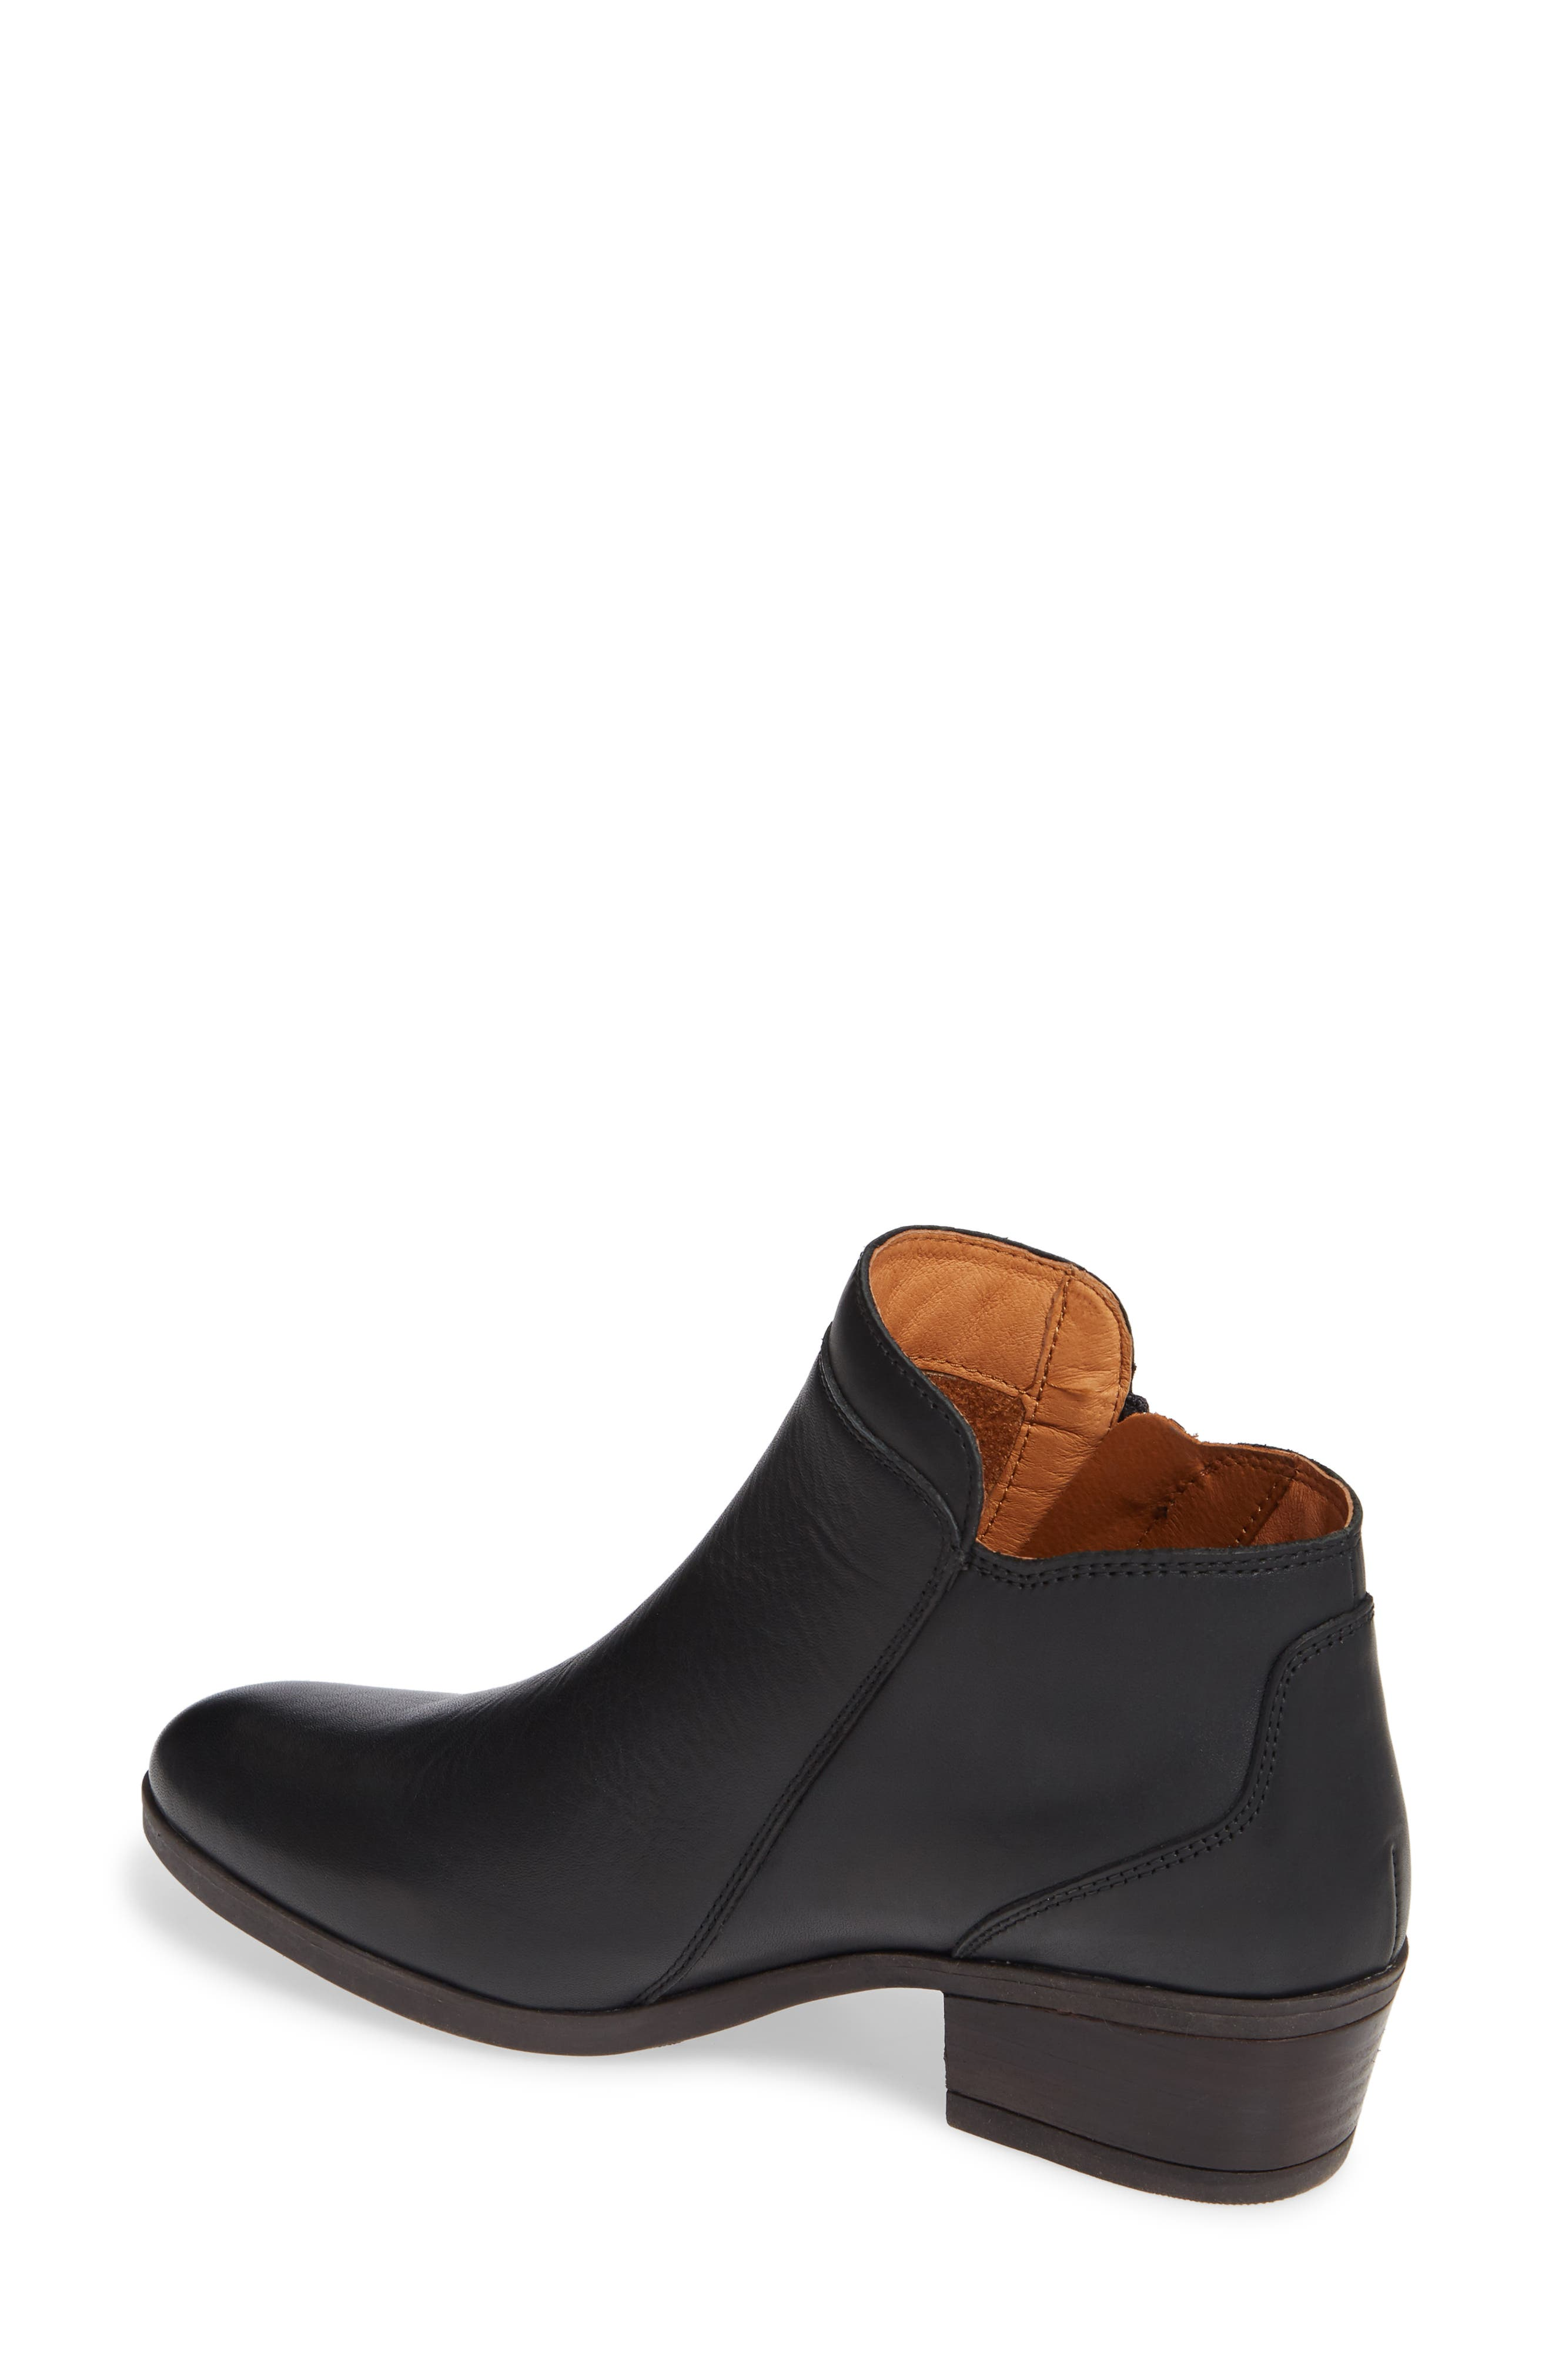 Daroca Bootie,                             Alternate thumbnail 2, color,                             BLACK LEATHER